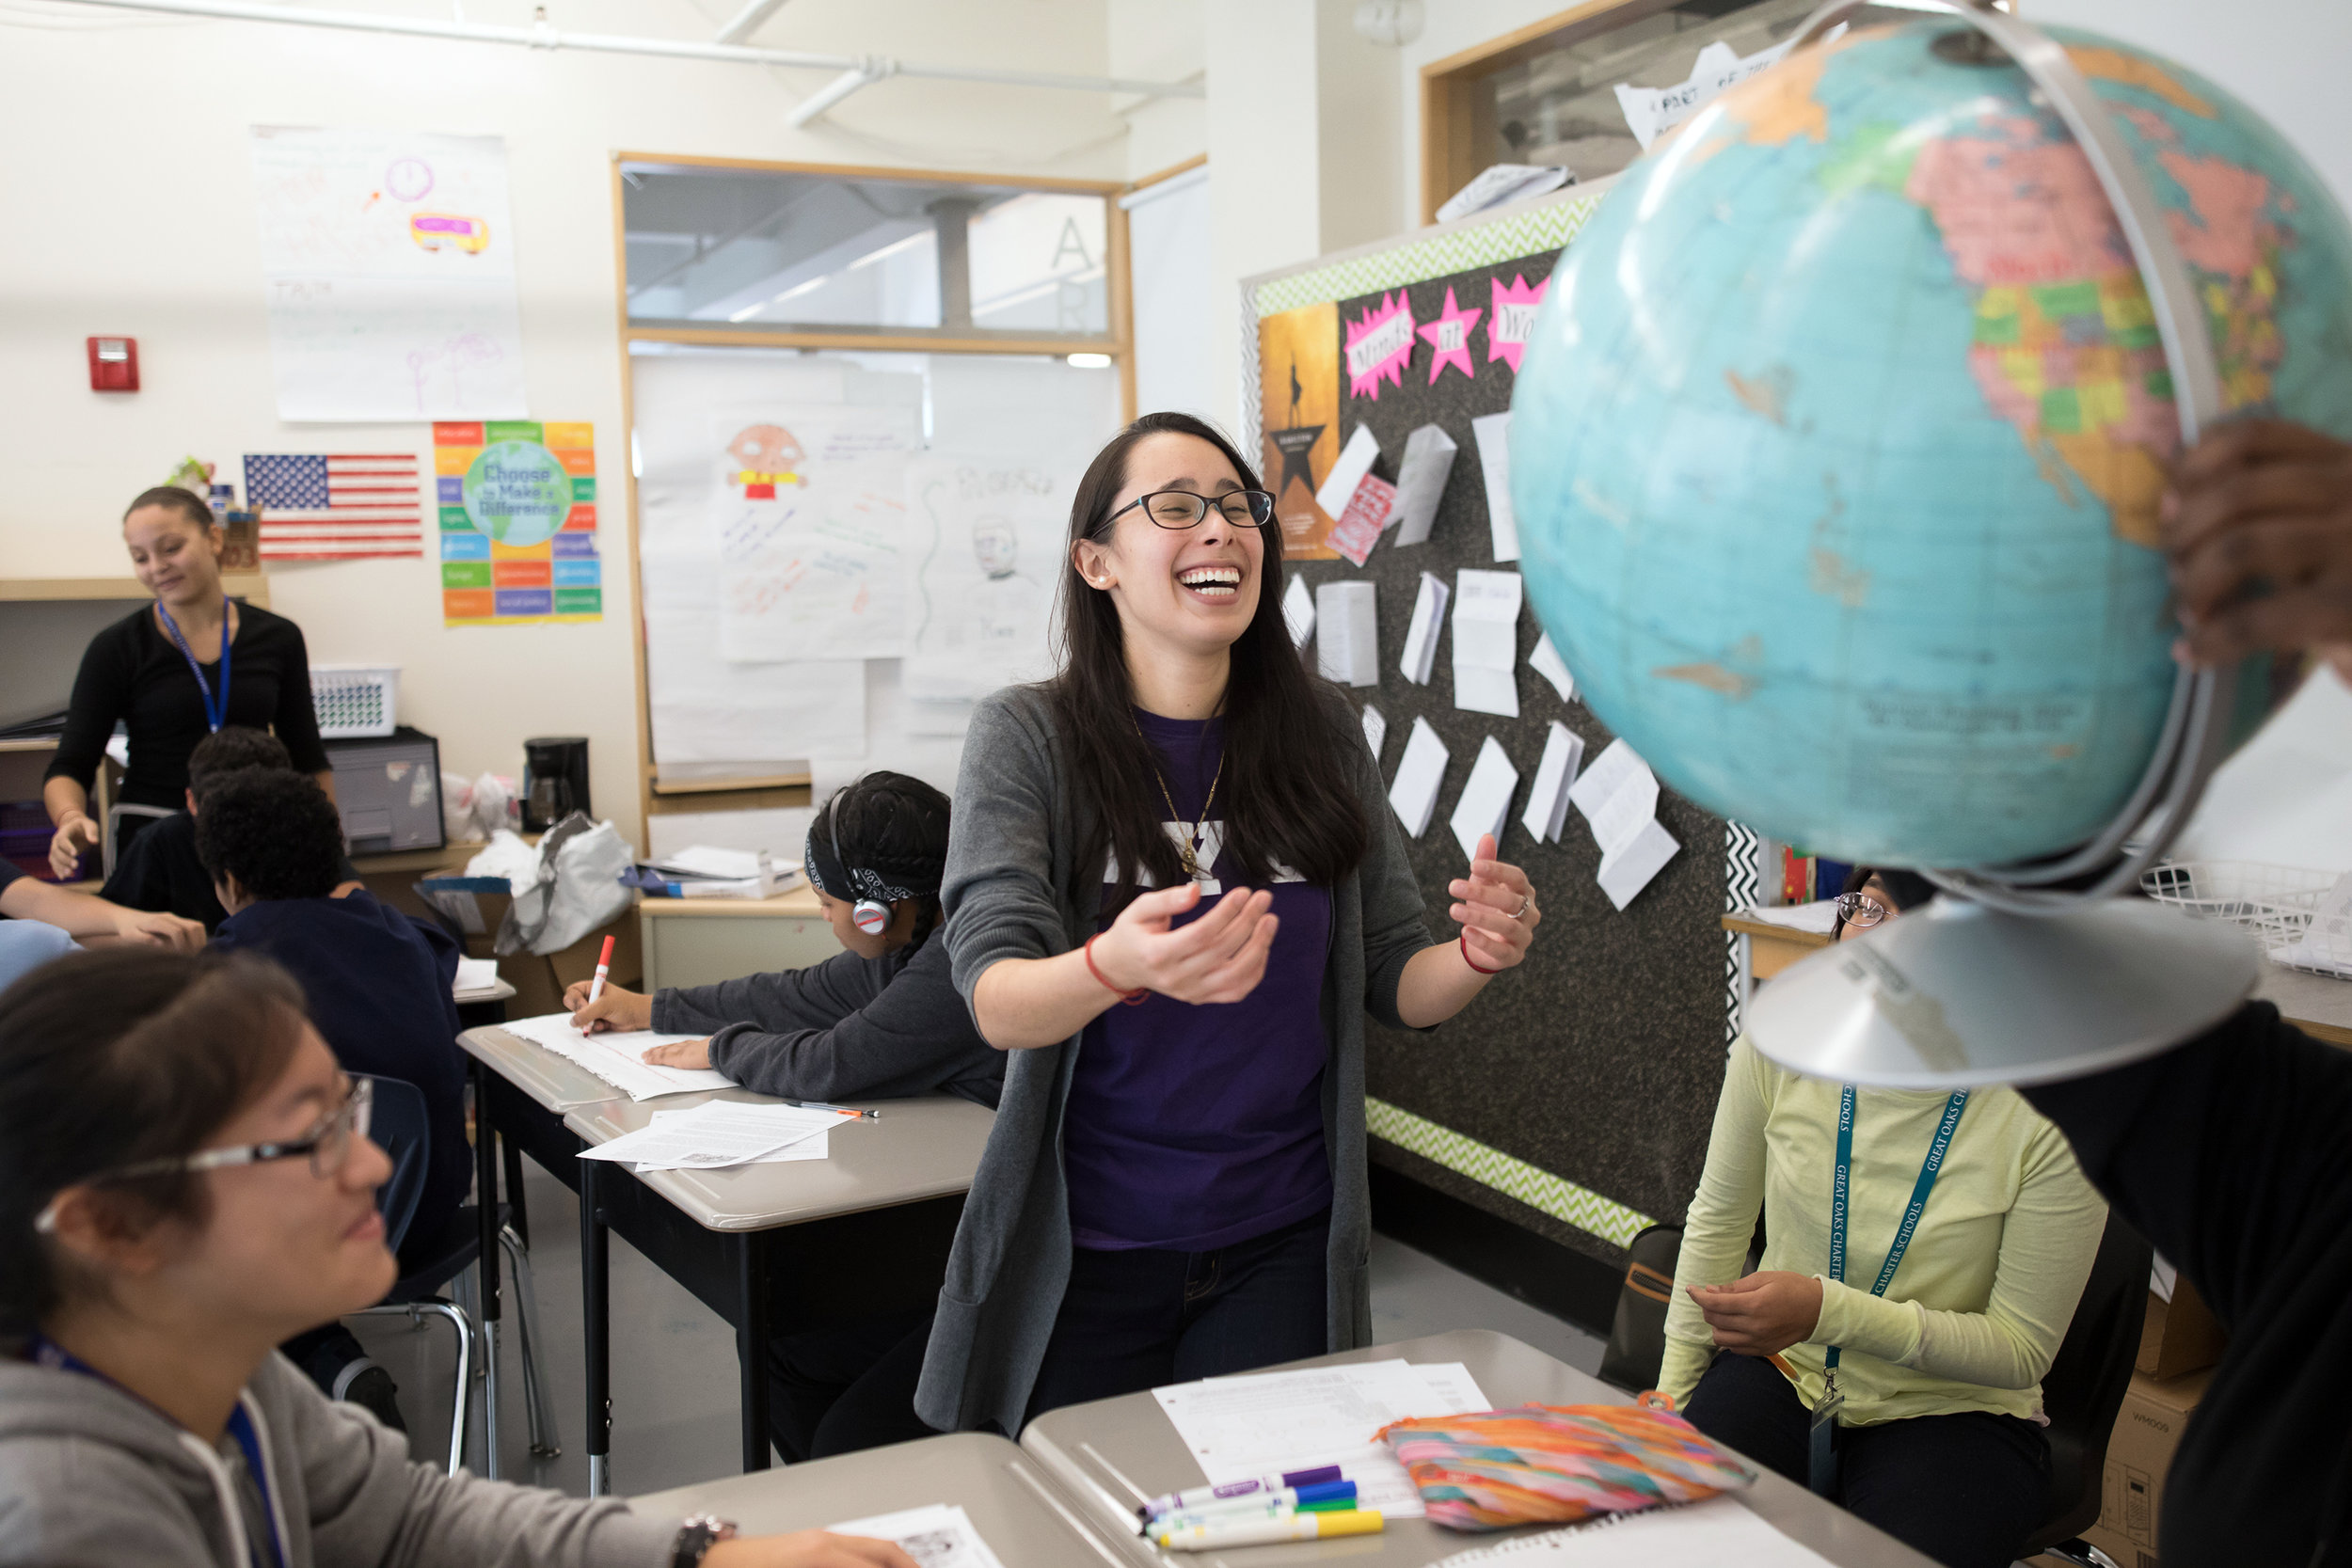 New York University student Adriana Garcia assisting students at Great Oaks, a charter school in the Lower East Side. Ms. Garcia is interning at the school as part of a teacher prep program that allows students to gain experience in the classroom while studying for their masters in education.